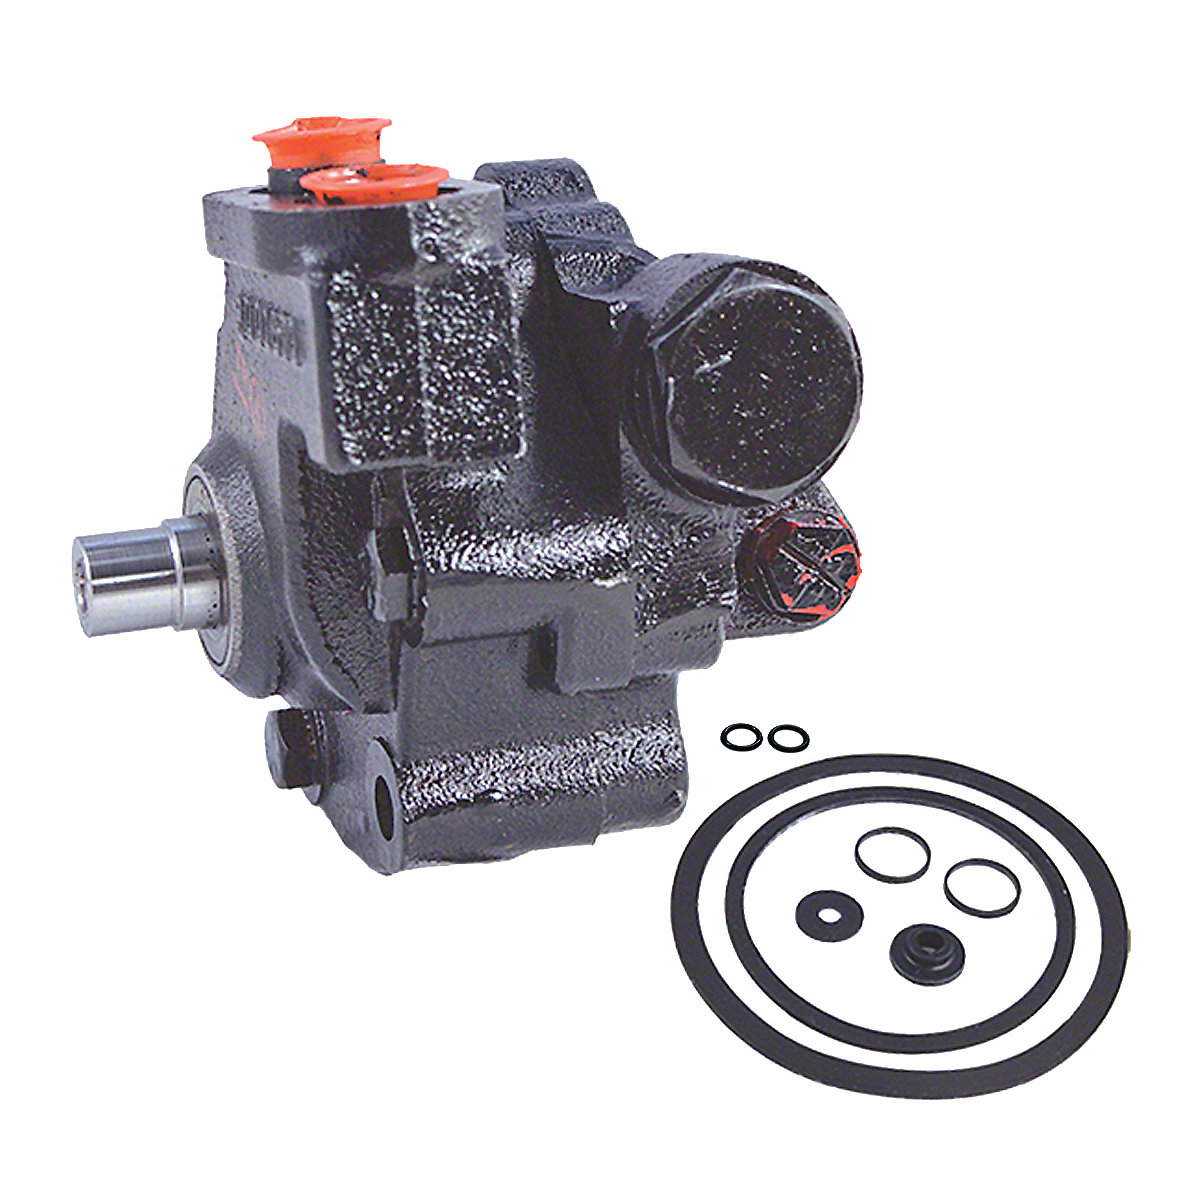 ABC1233 - BELT DRIVEN POWER STEERING PUMP ONLY FOR TRACTORS